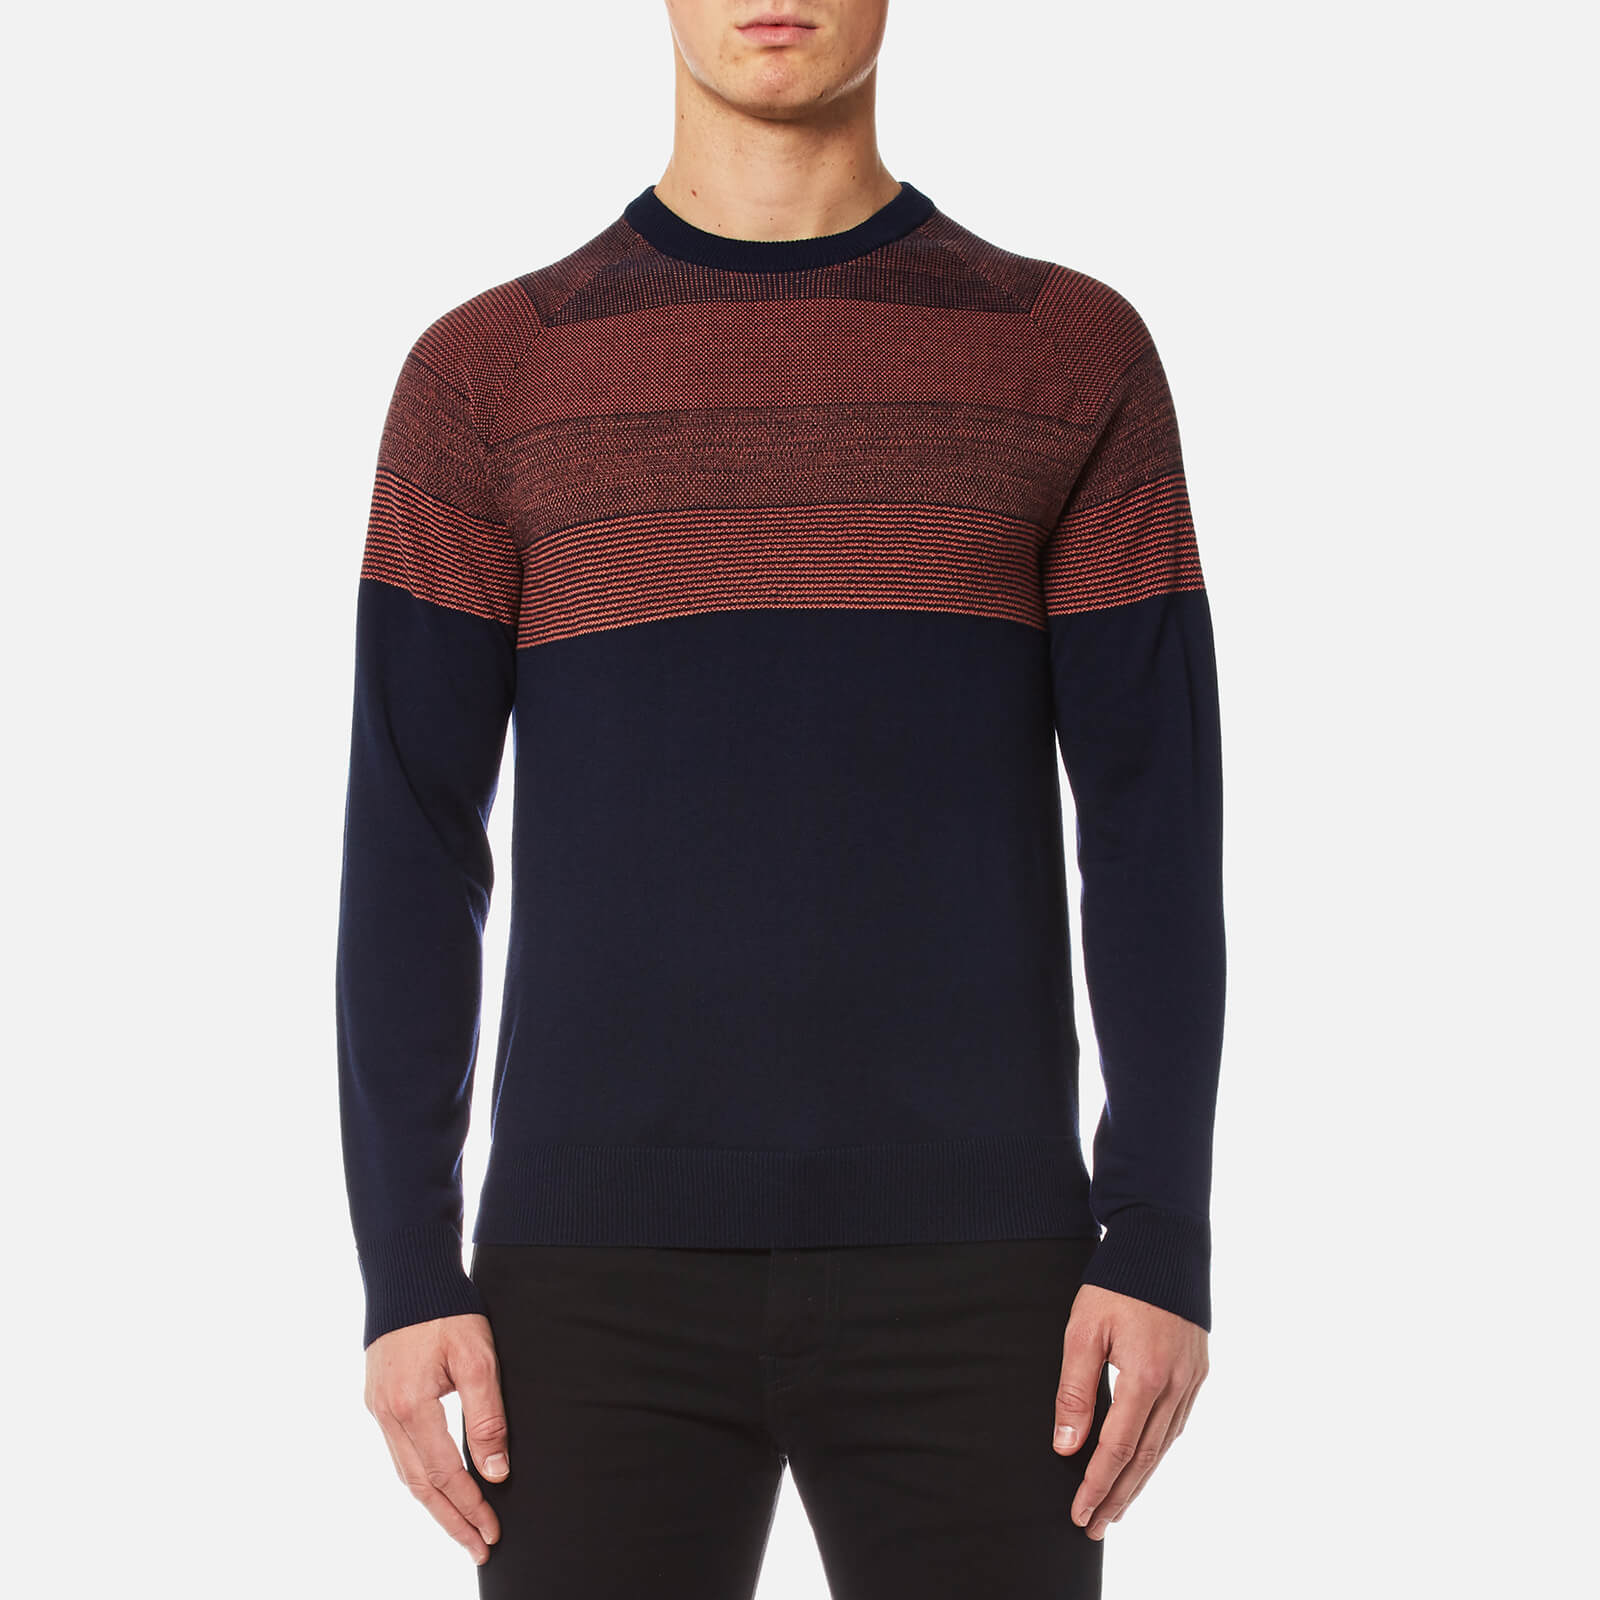 e63875e89ccc3c PS Paul Smith Men's Contrast Shoulder Knitted Jumper - Navy - Free UK  Delivery over £50